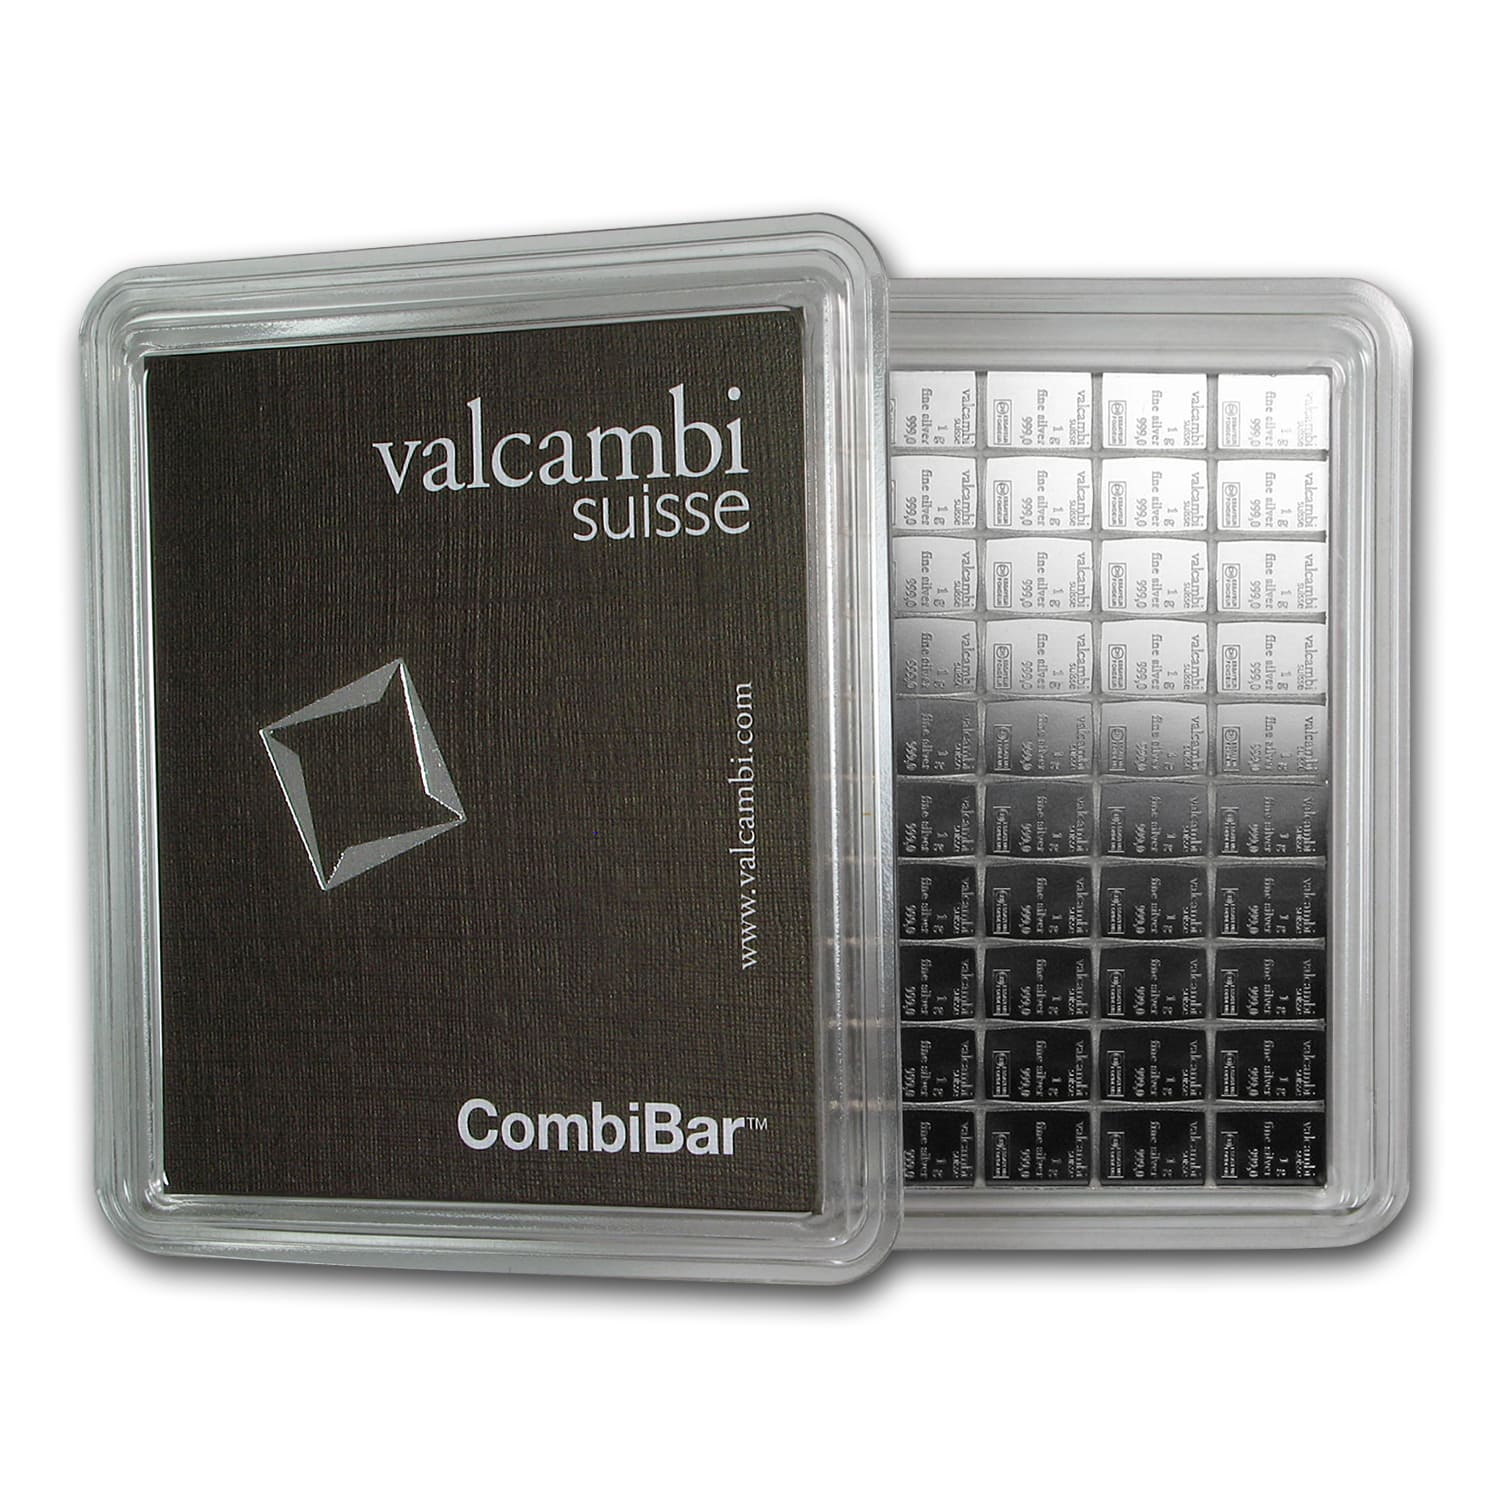 100 x 1 gram Silver Bar - Valcambi Silver CombiBar™ (With Assay)